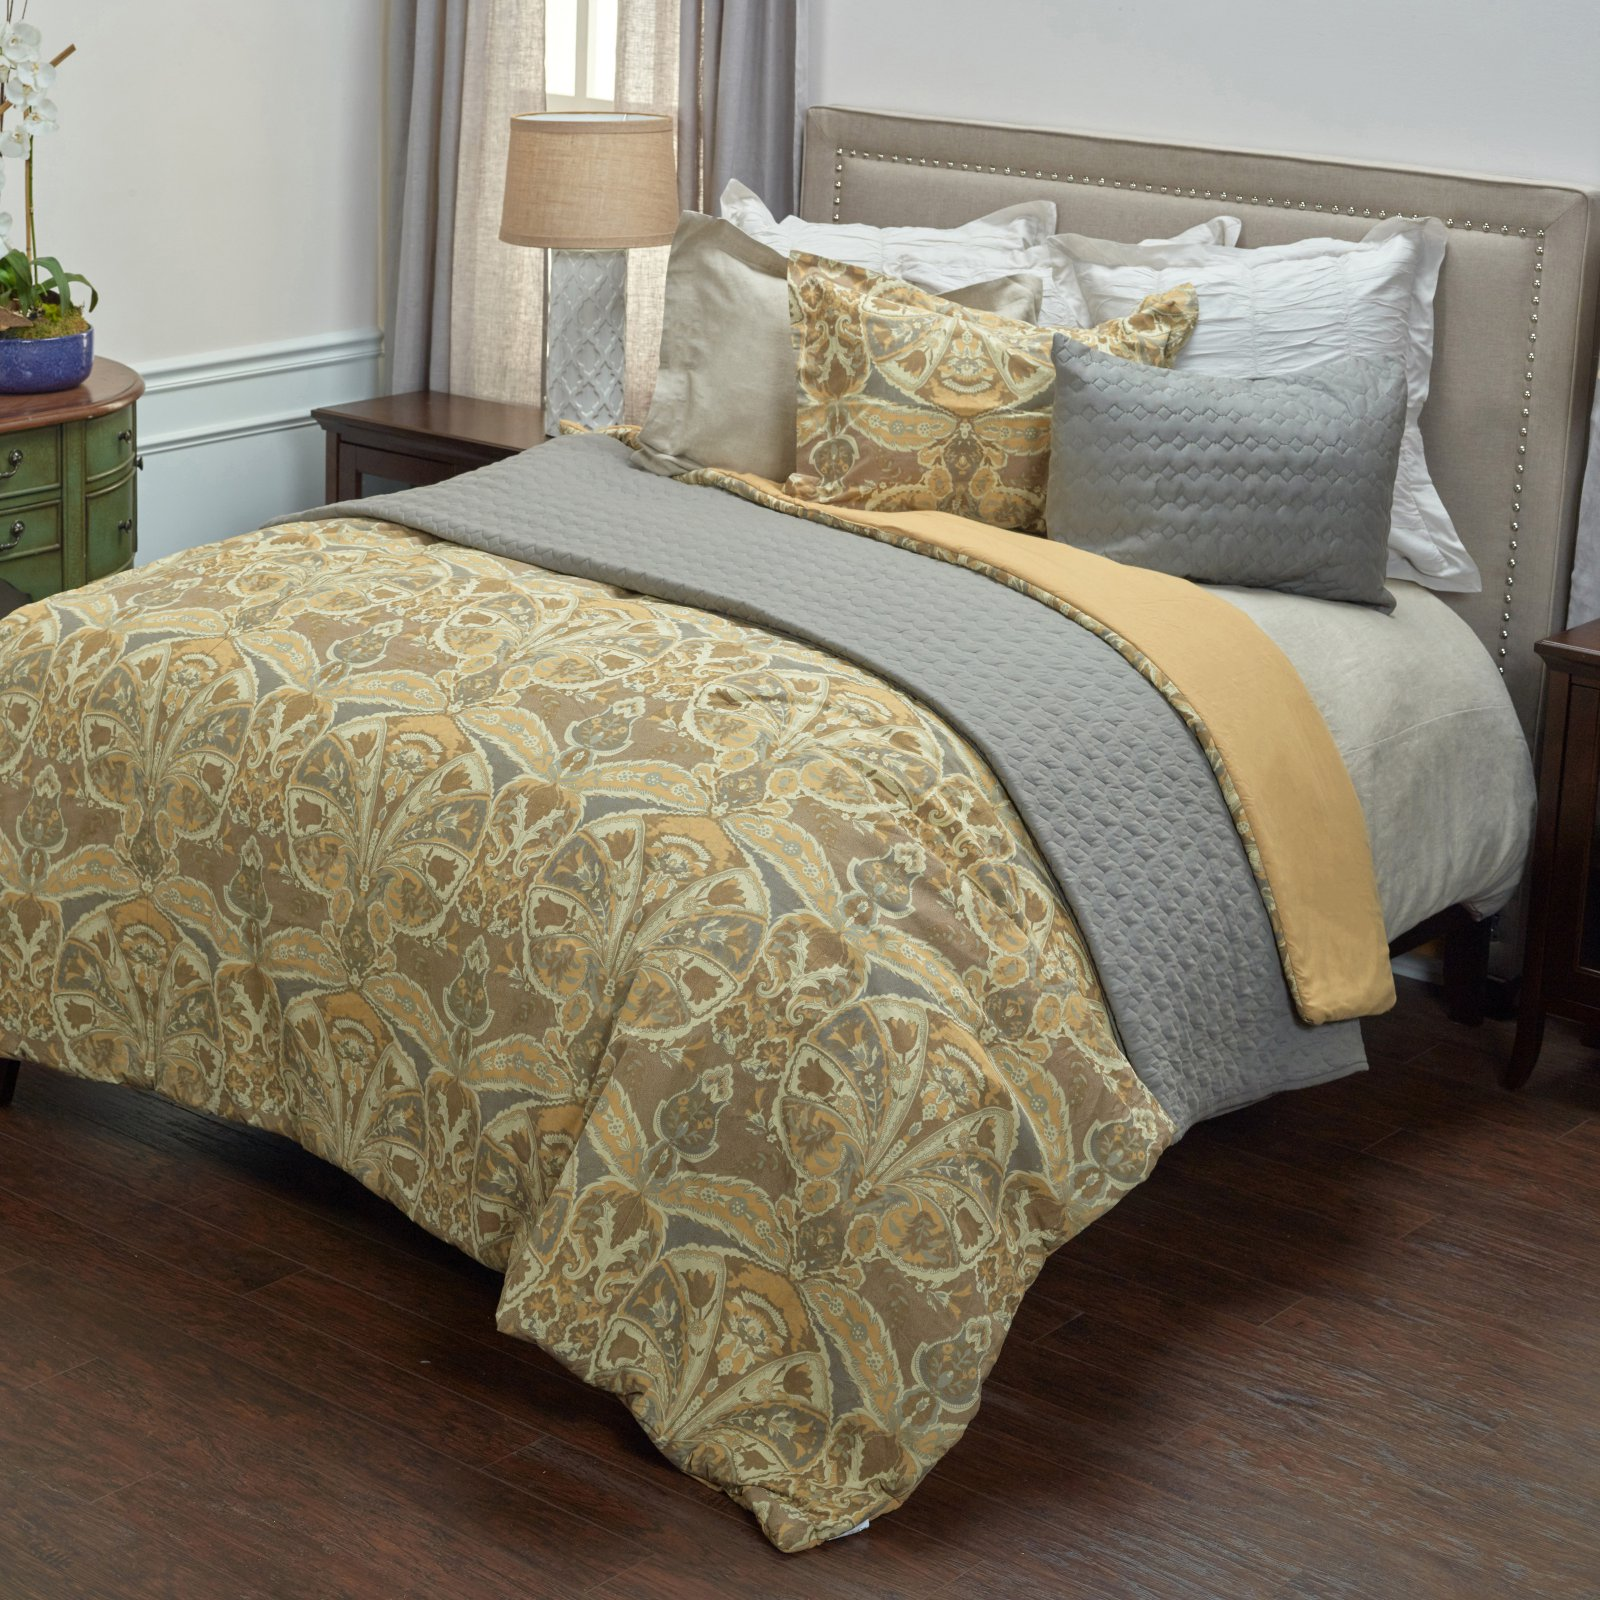 Rizzy Home Rosmond Heights Queen Size Comforter Set in Gold Color